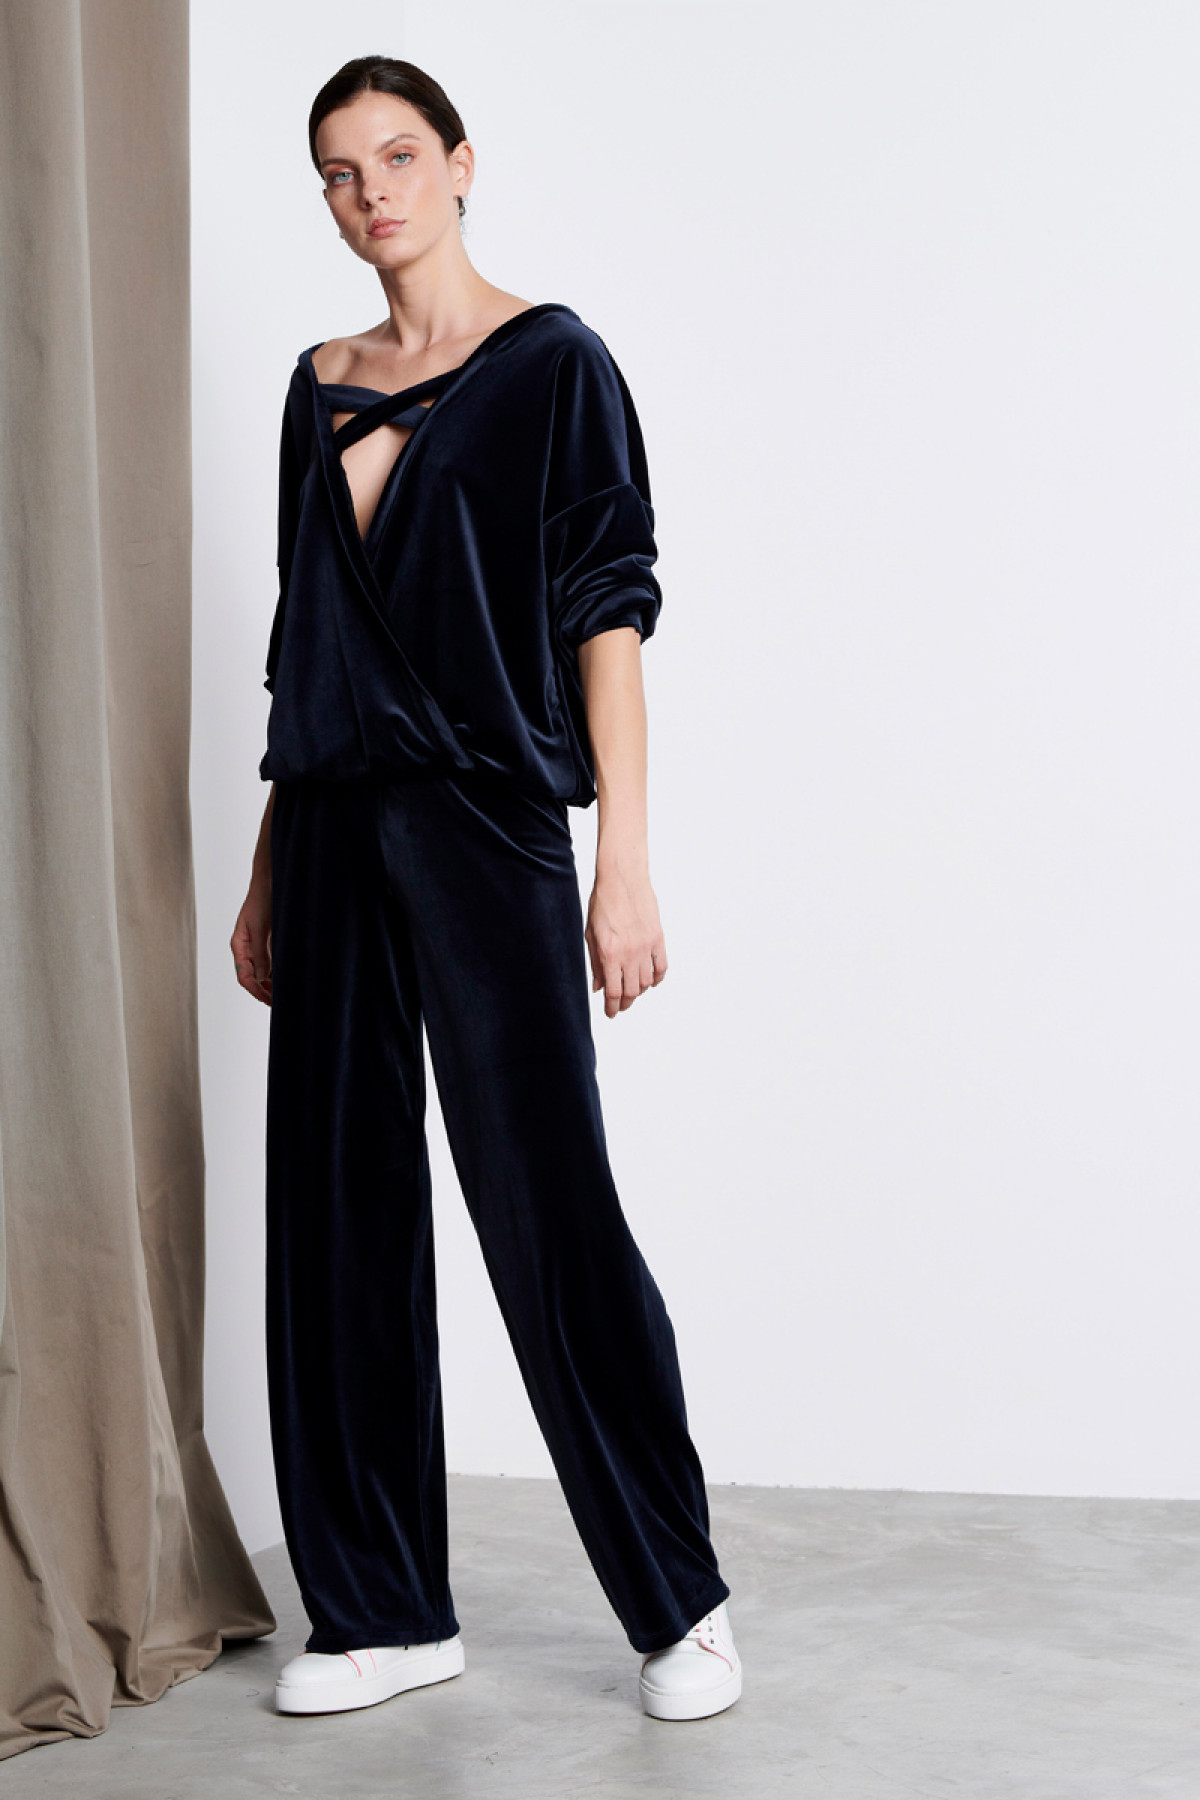 NAVY BLUE VELVET WIDE LEG TROUSERS